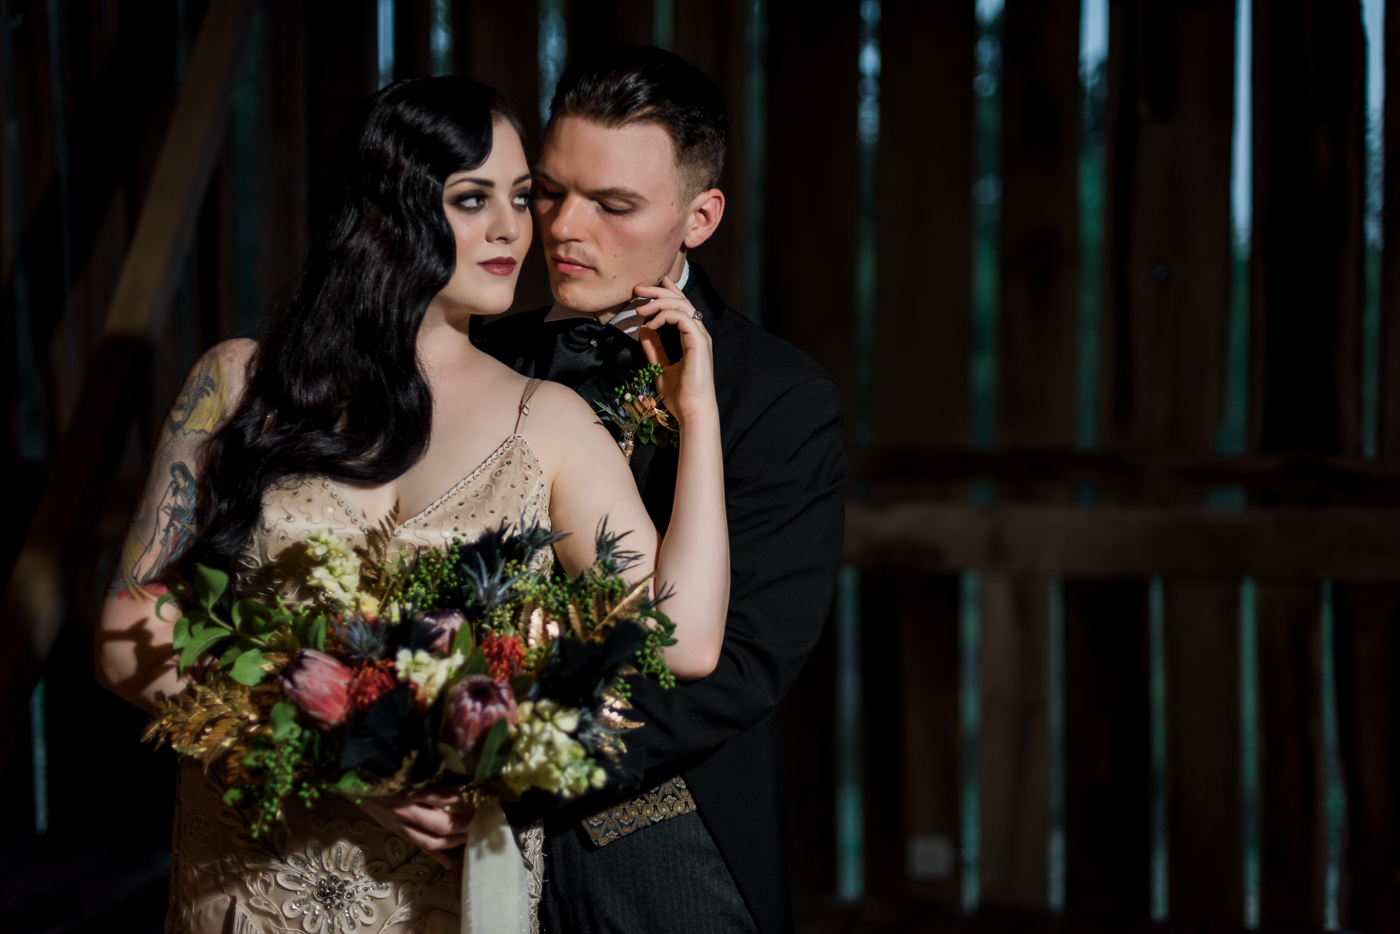 and-how-imaging-gothic-inspired-styled-shoot-gothic-wedding-1920s-theme-wedding-1920s-inspired-styled-shoot-halloween-styled-shoot-gothic-inspired-wedding-66